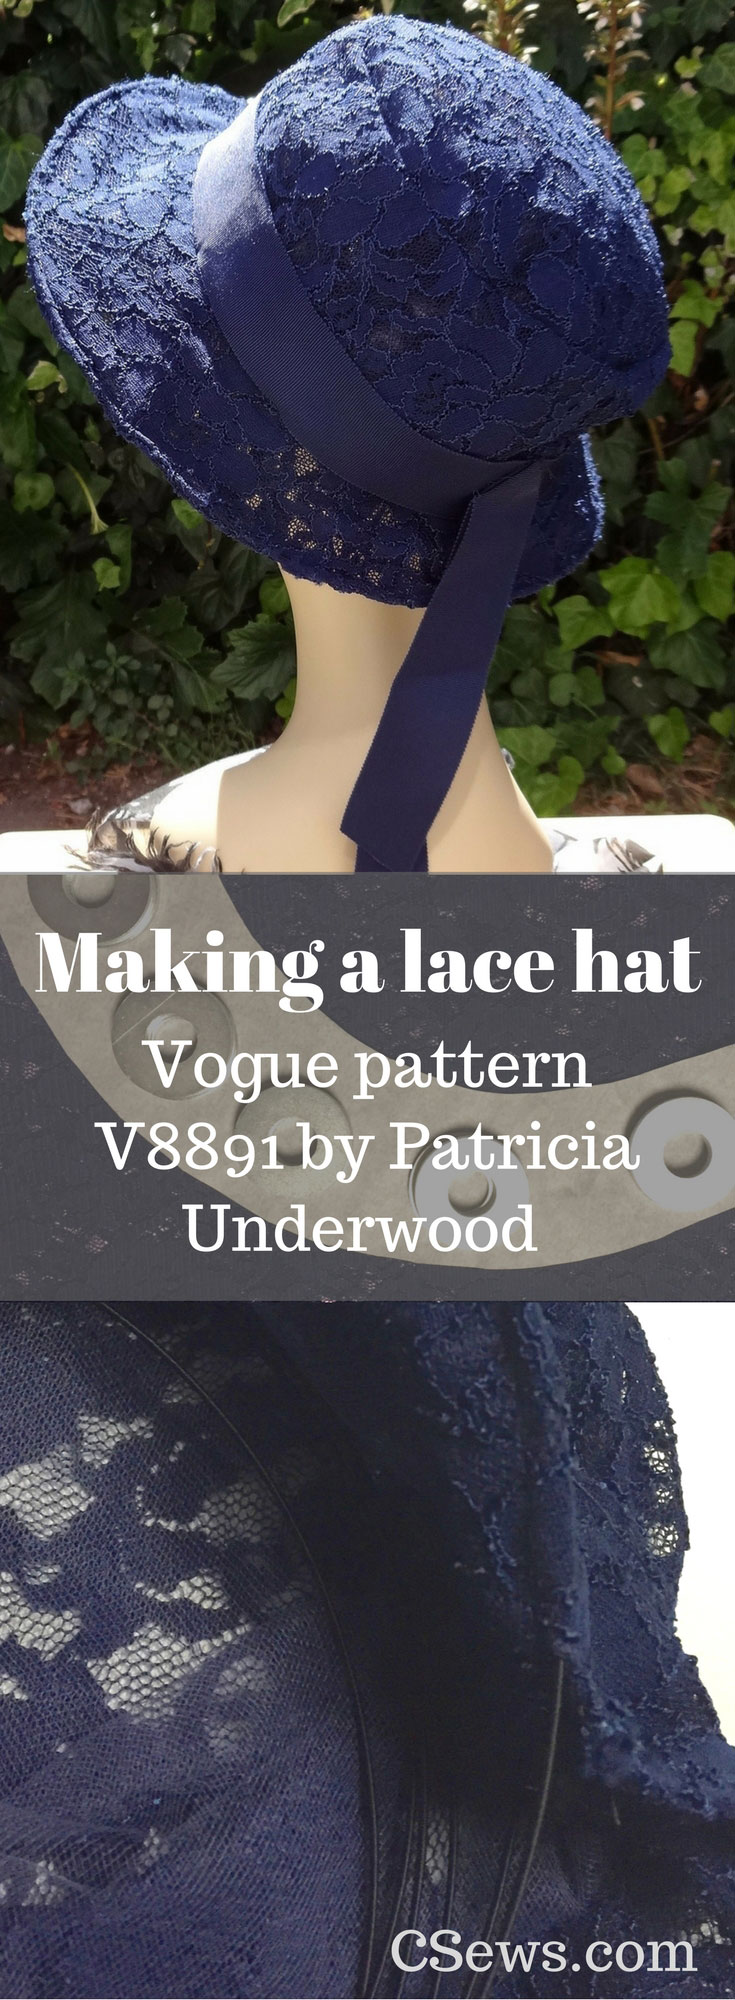 Making a lace hat with Vogue sewing pattern V8891 - by Patricia Underwood